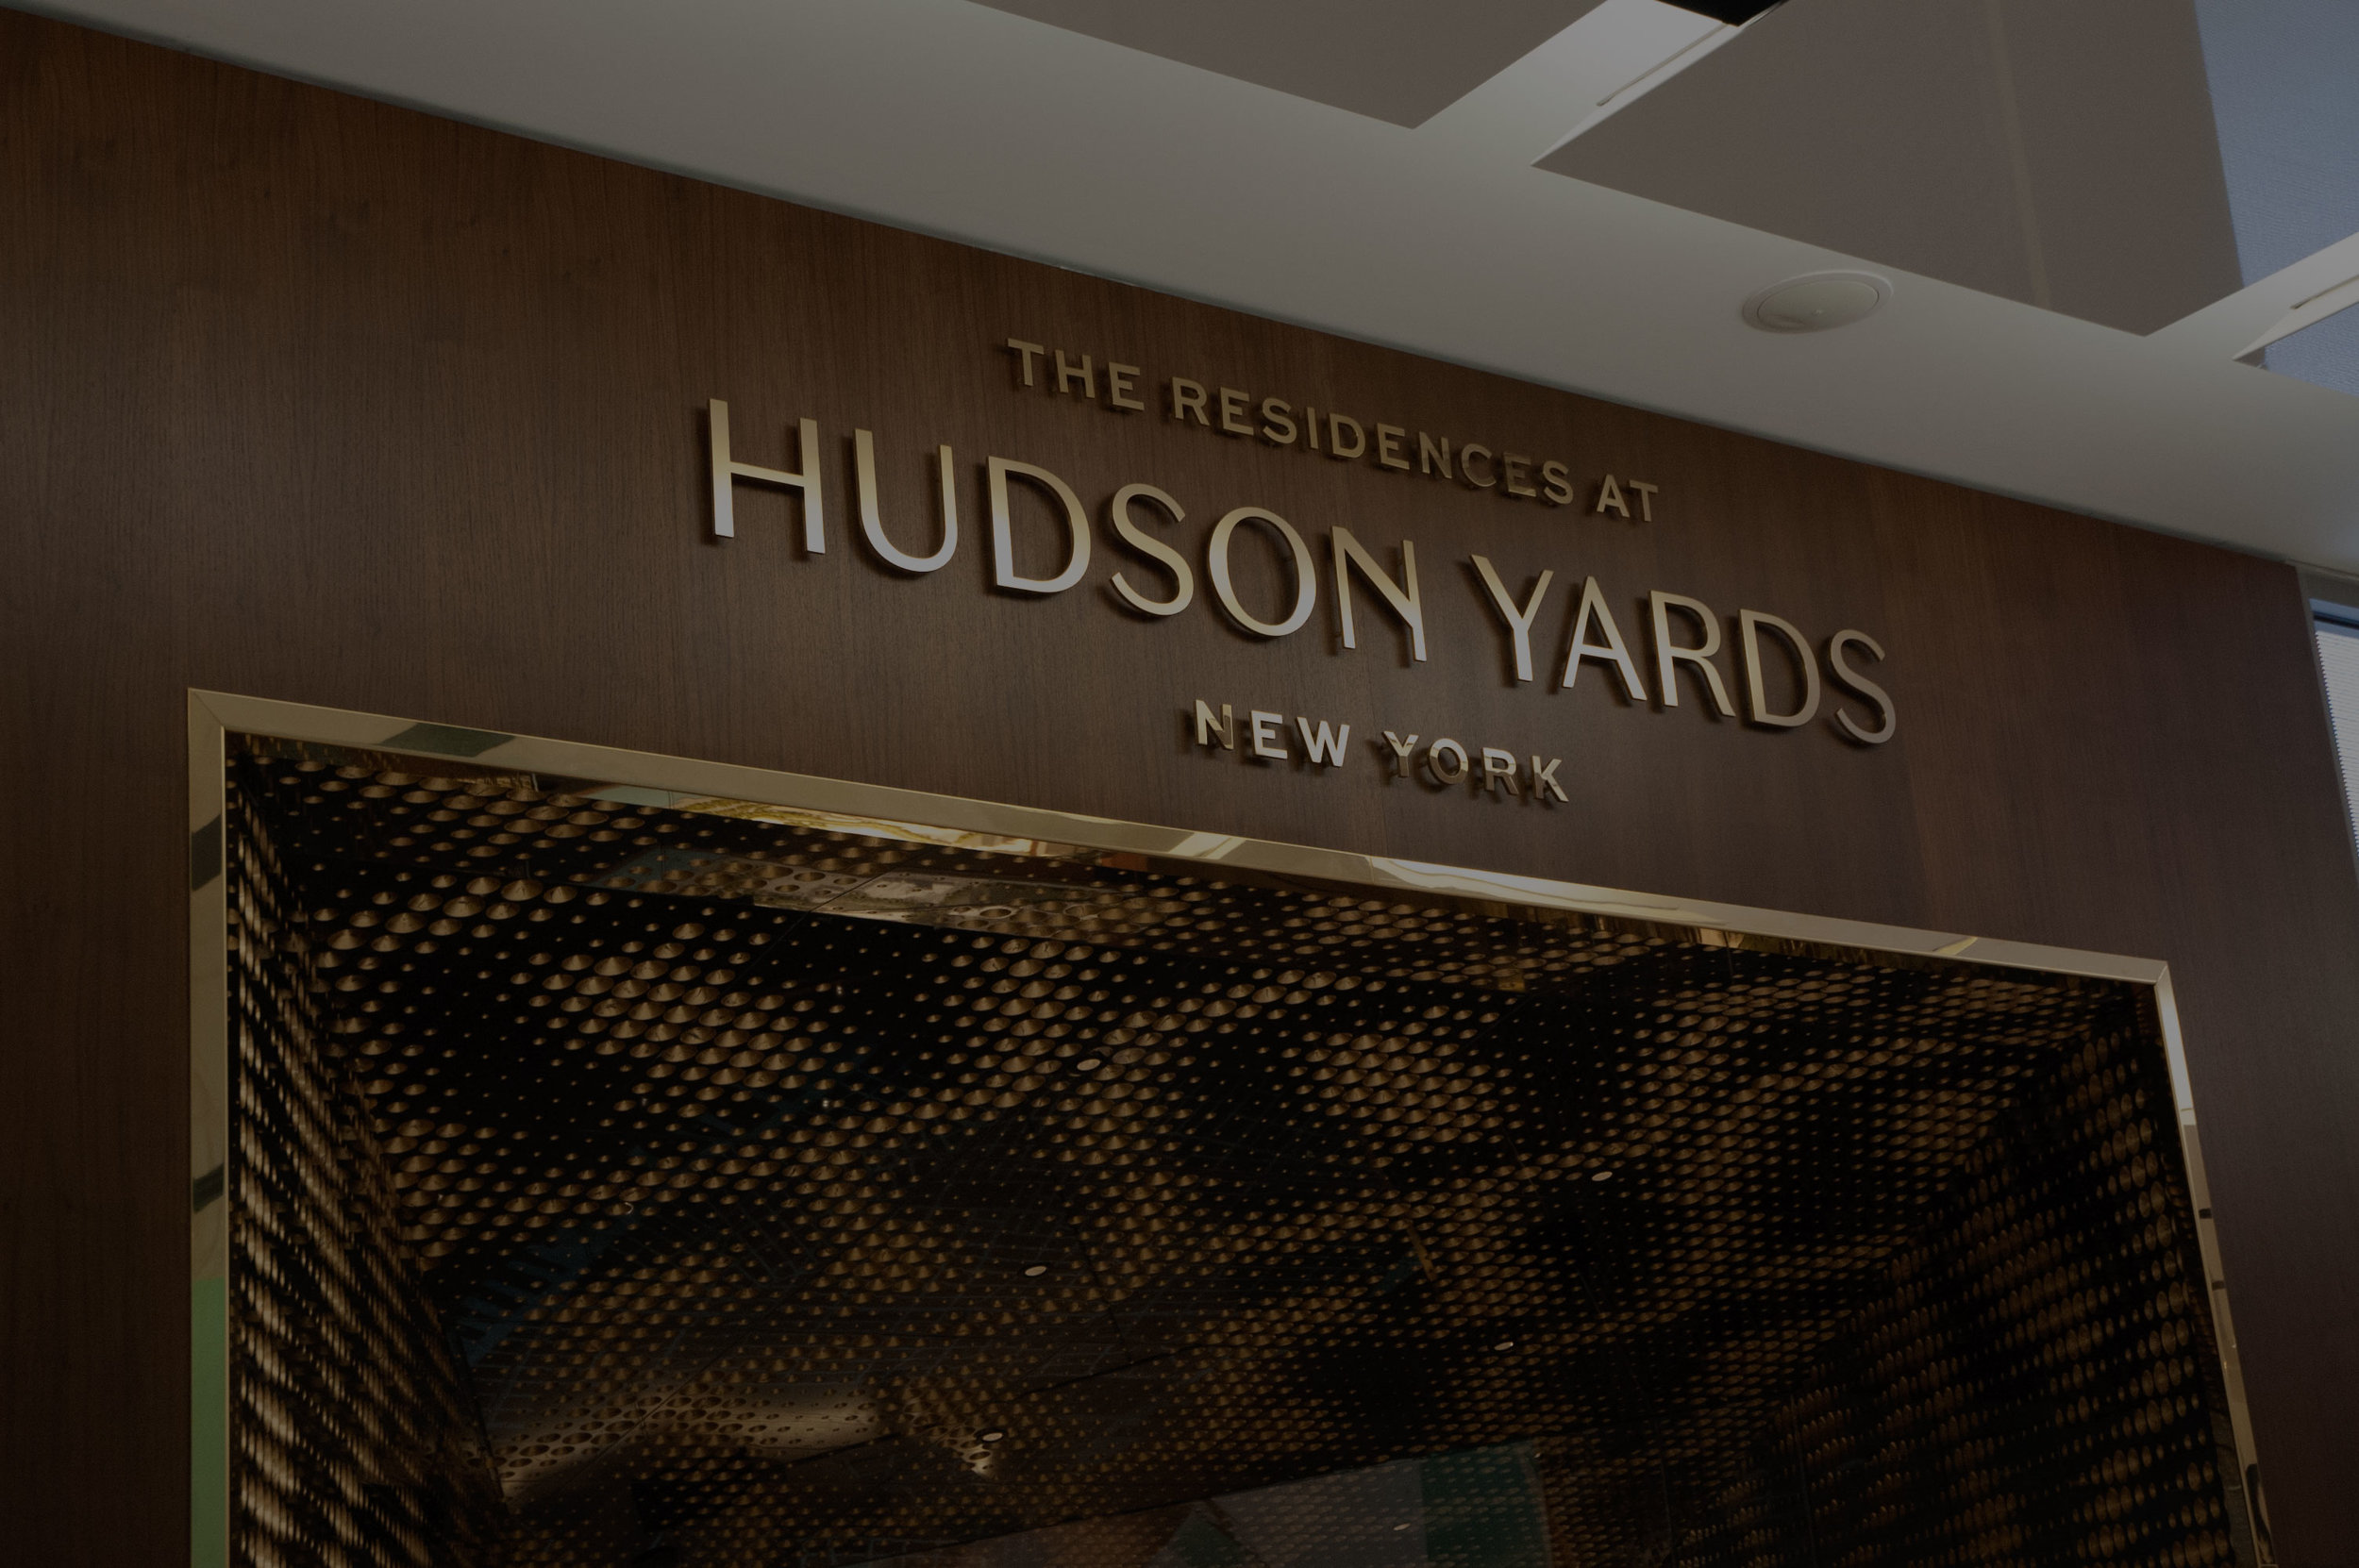 Hudson Yards - New York, NYCOMING SOON